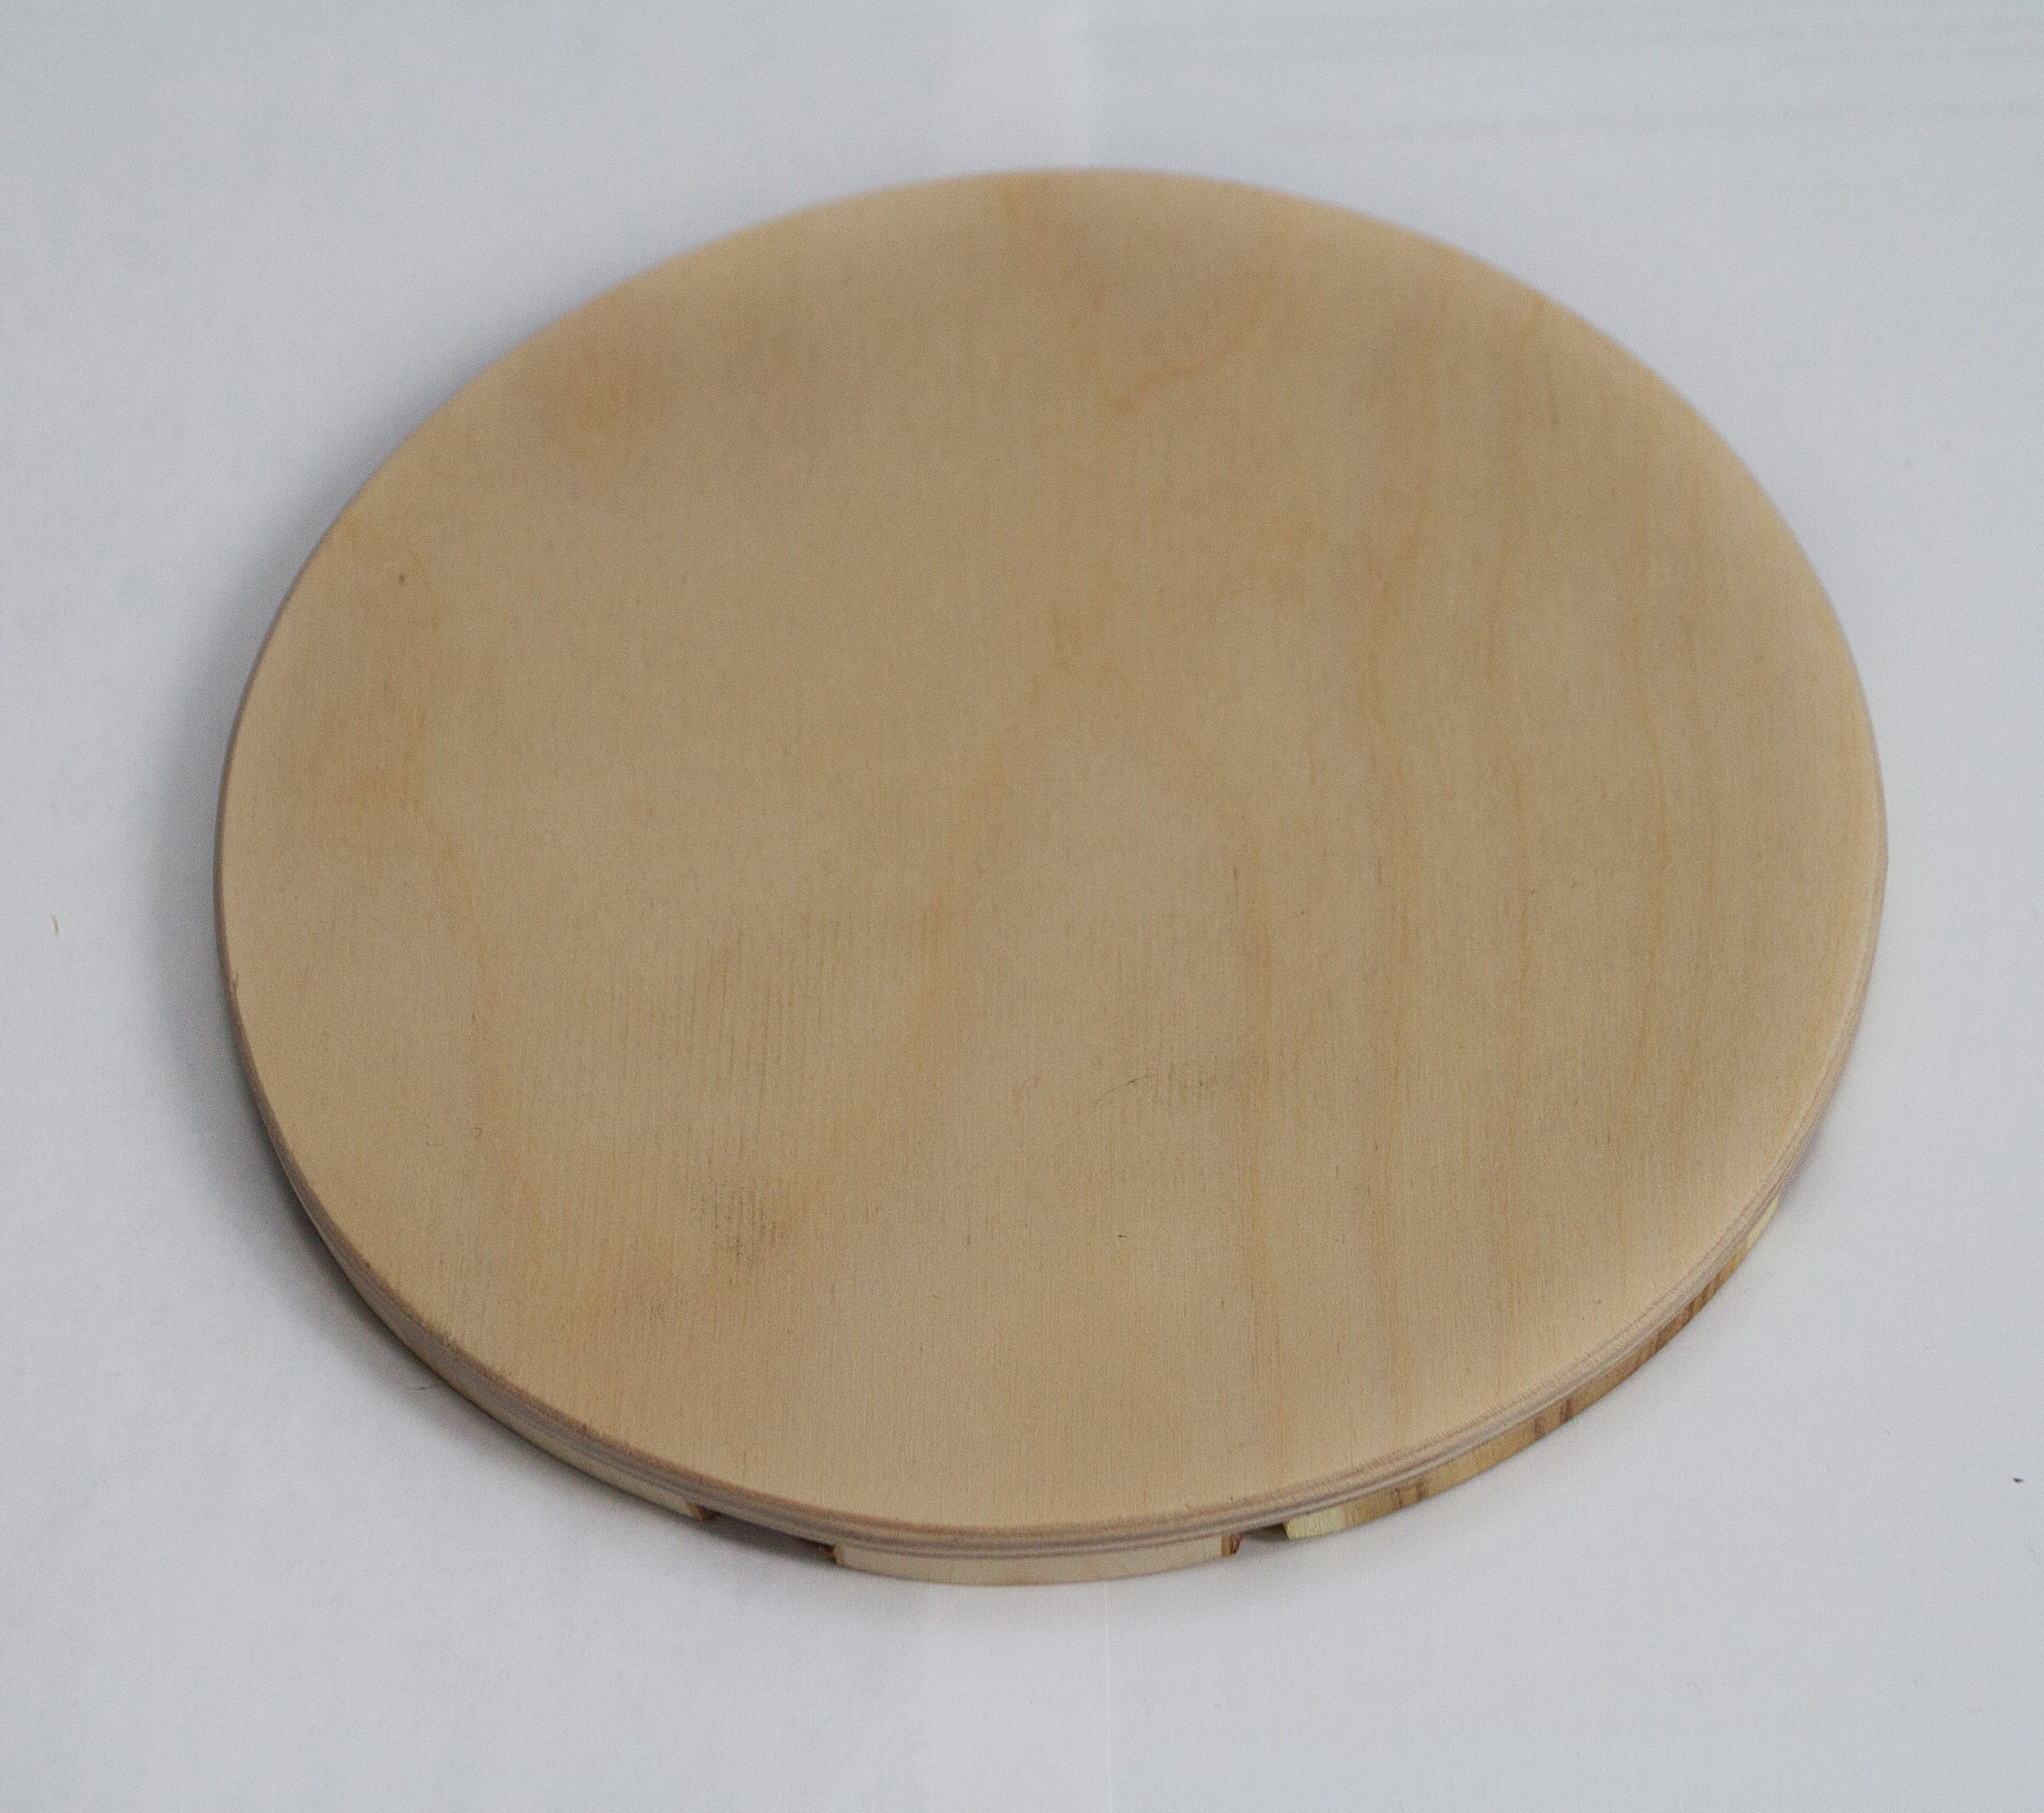 Handmade Wooden Trivet for Hot Dishes - 7.5 Inch. - Big Coaster - 6 Sorts of Wood - Natural Smell - Unique Art Decor in the Kitchen - Made by SPL Woodcraft Ukraine by SPL woodcraft (Image #6)